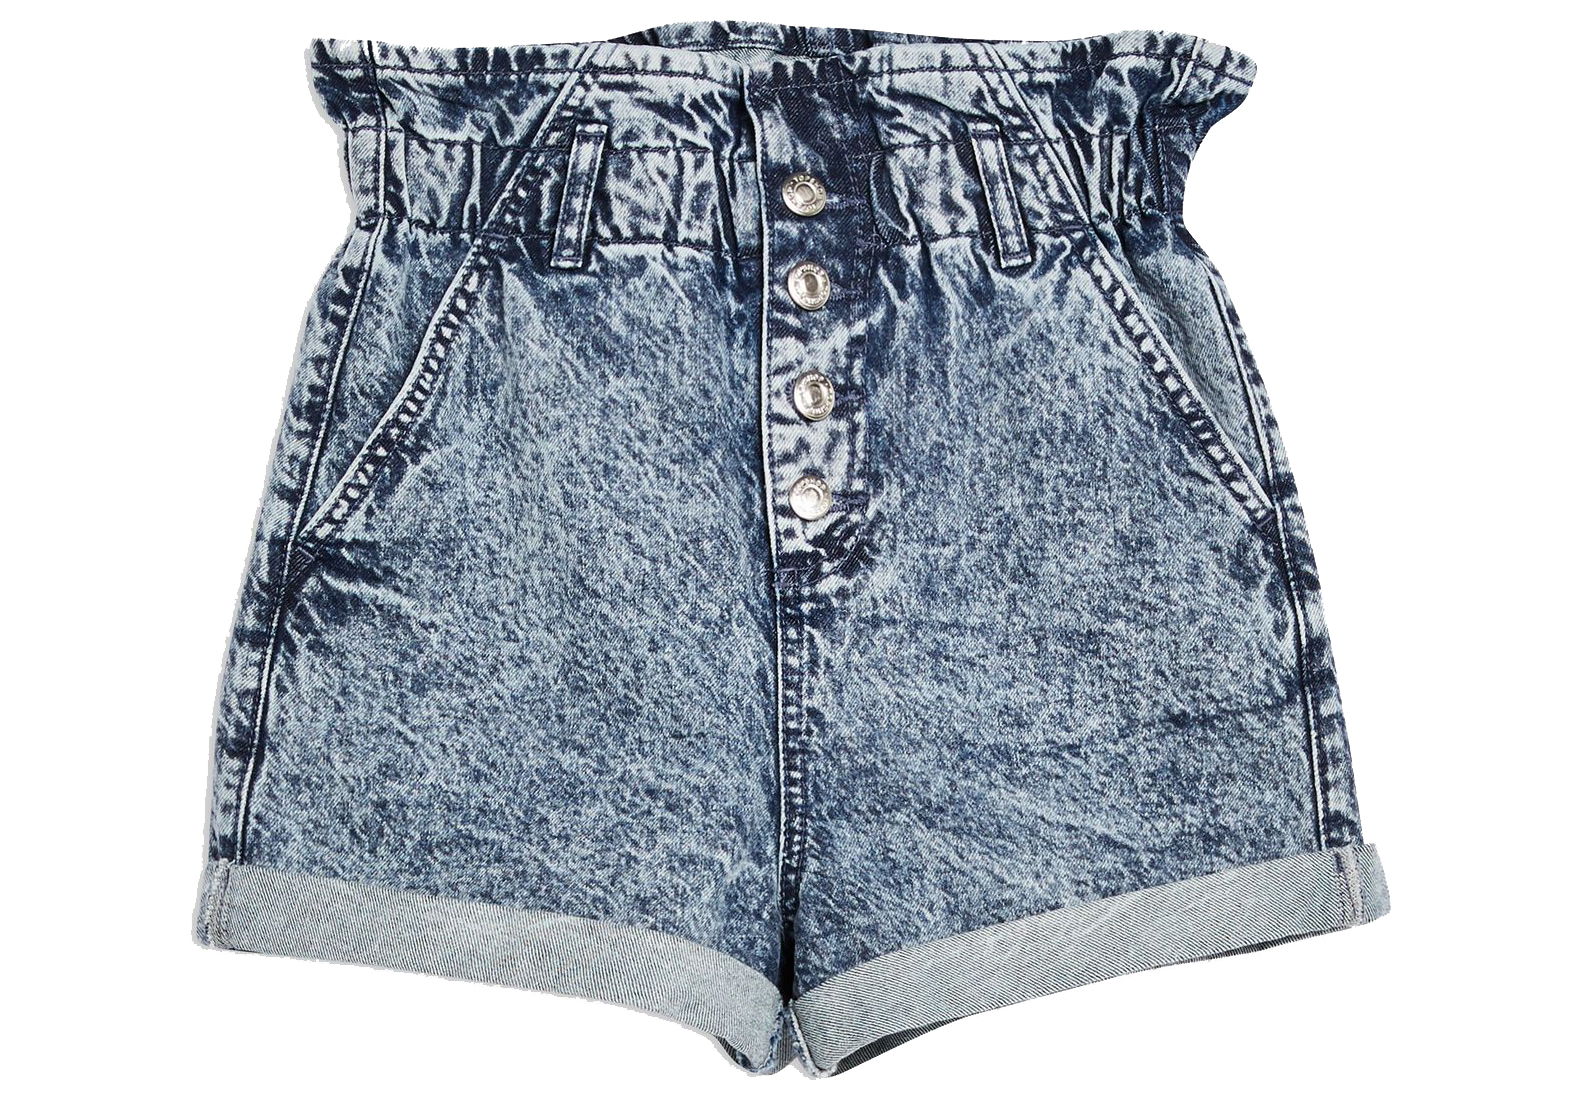 Topshop Acid Wash Paperbag Denim Shorts